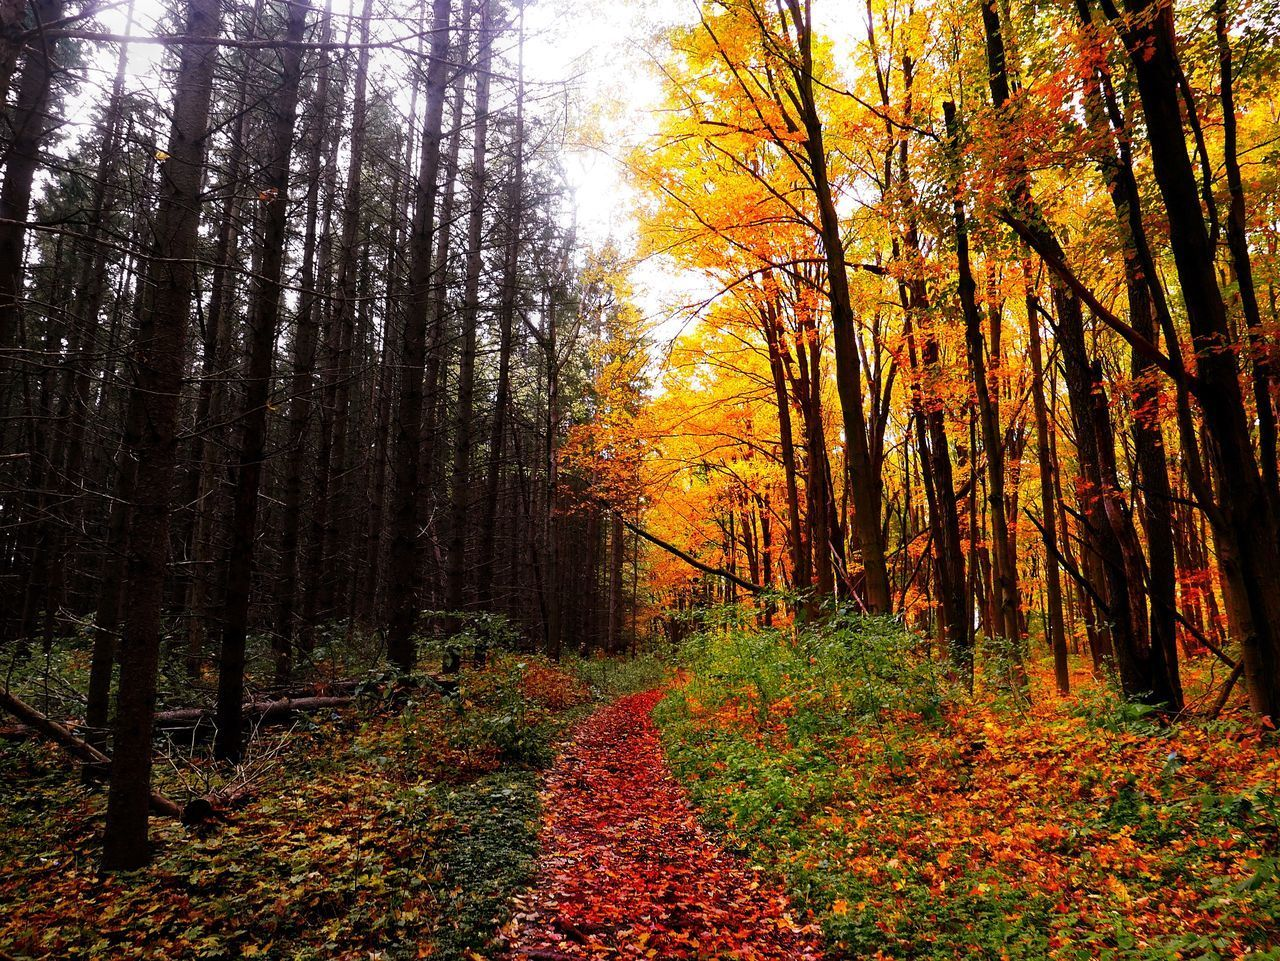 TREES BY PLANTS IN FOREST DURING AUTUMN